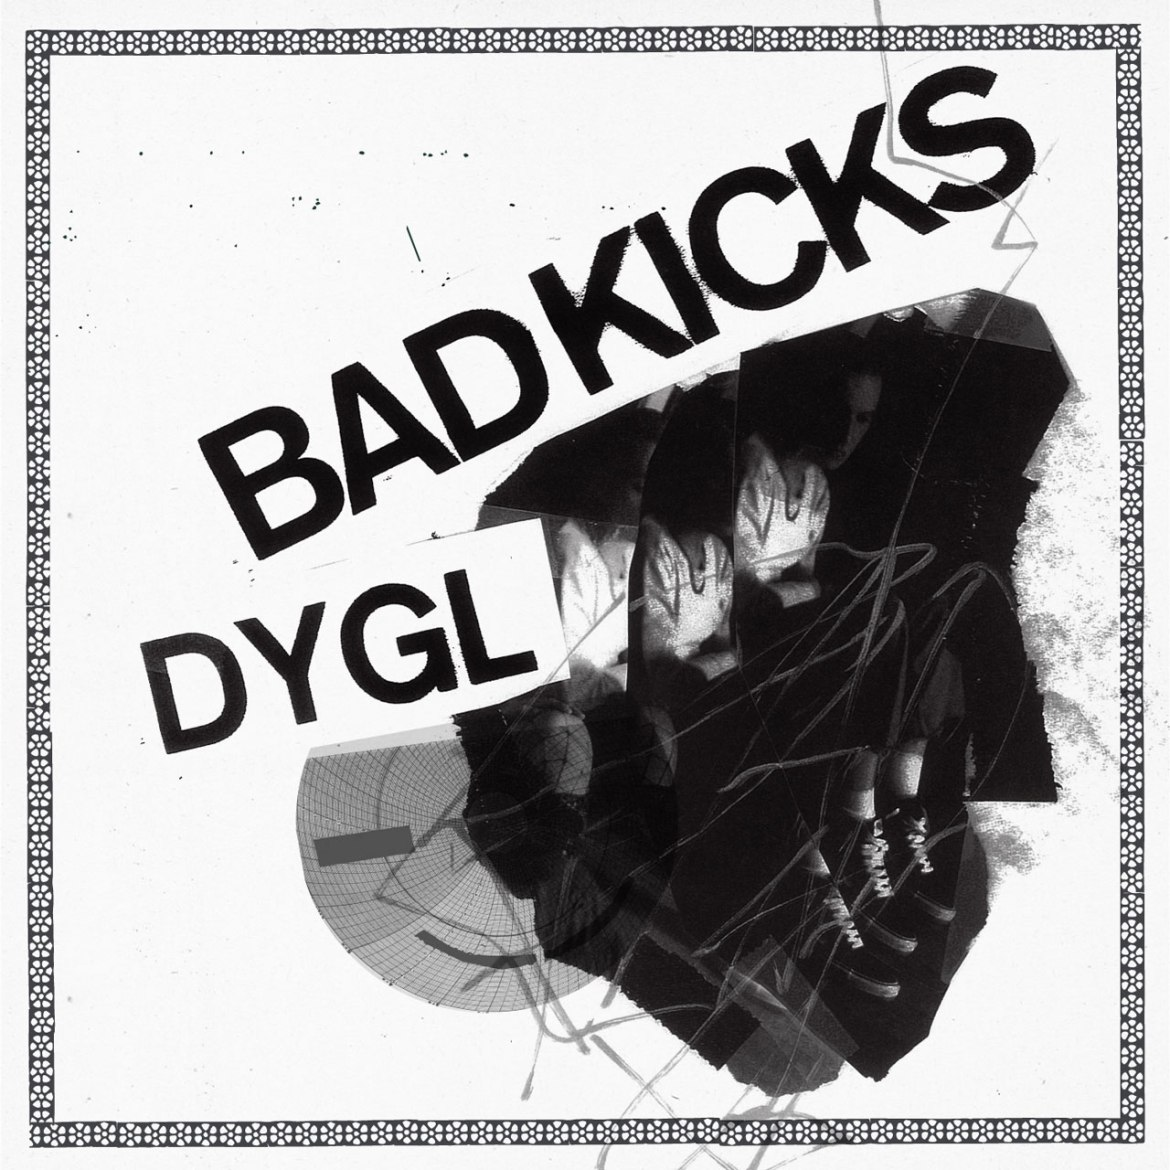 DYGL_BADKICKS_JACKET_FIX.JPG